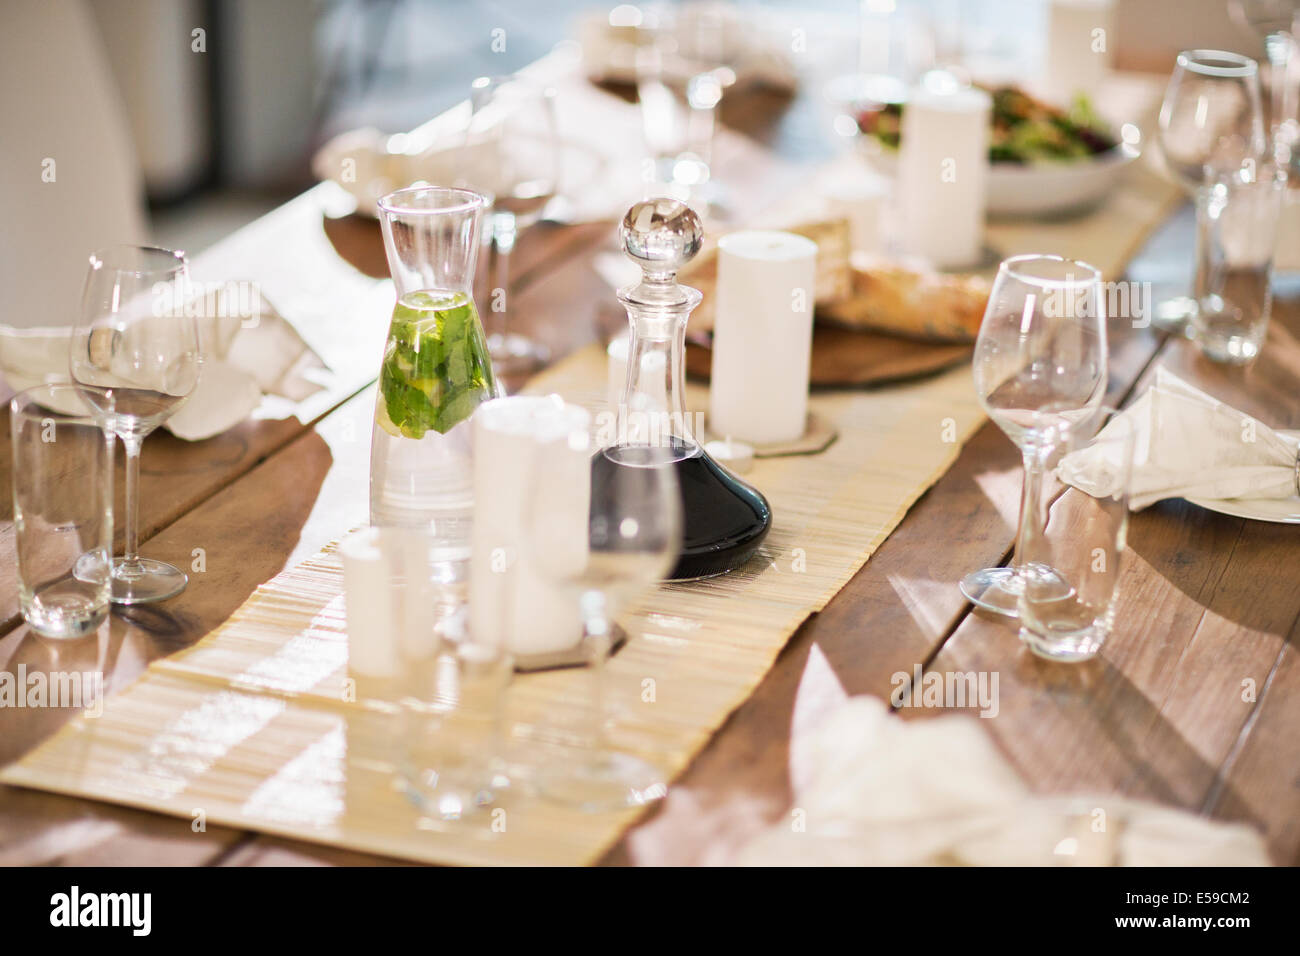 Set table at dinner party - Stock Image